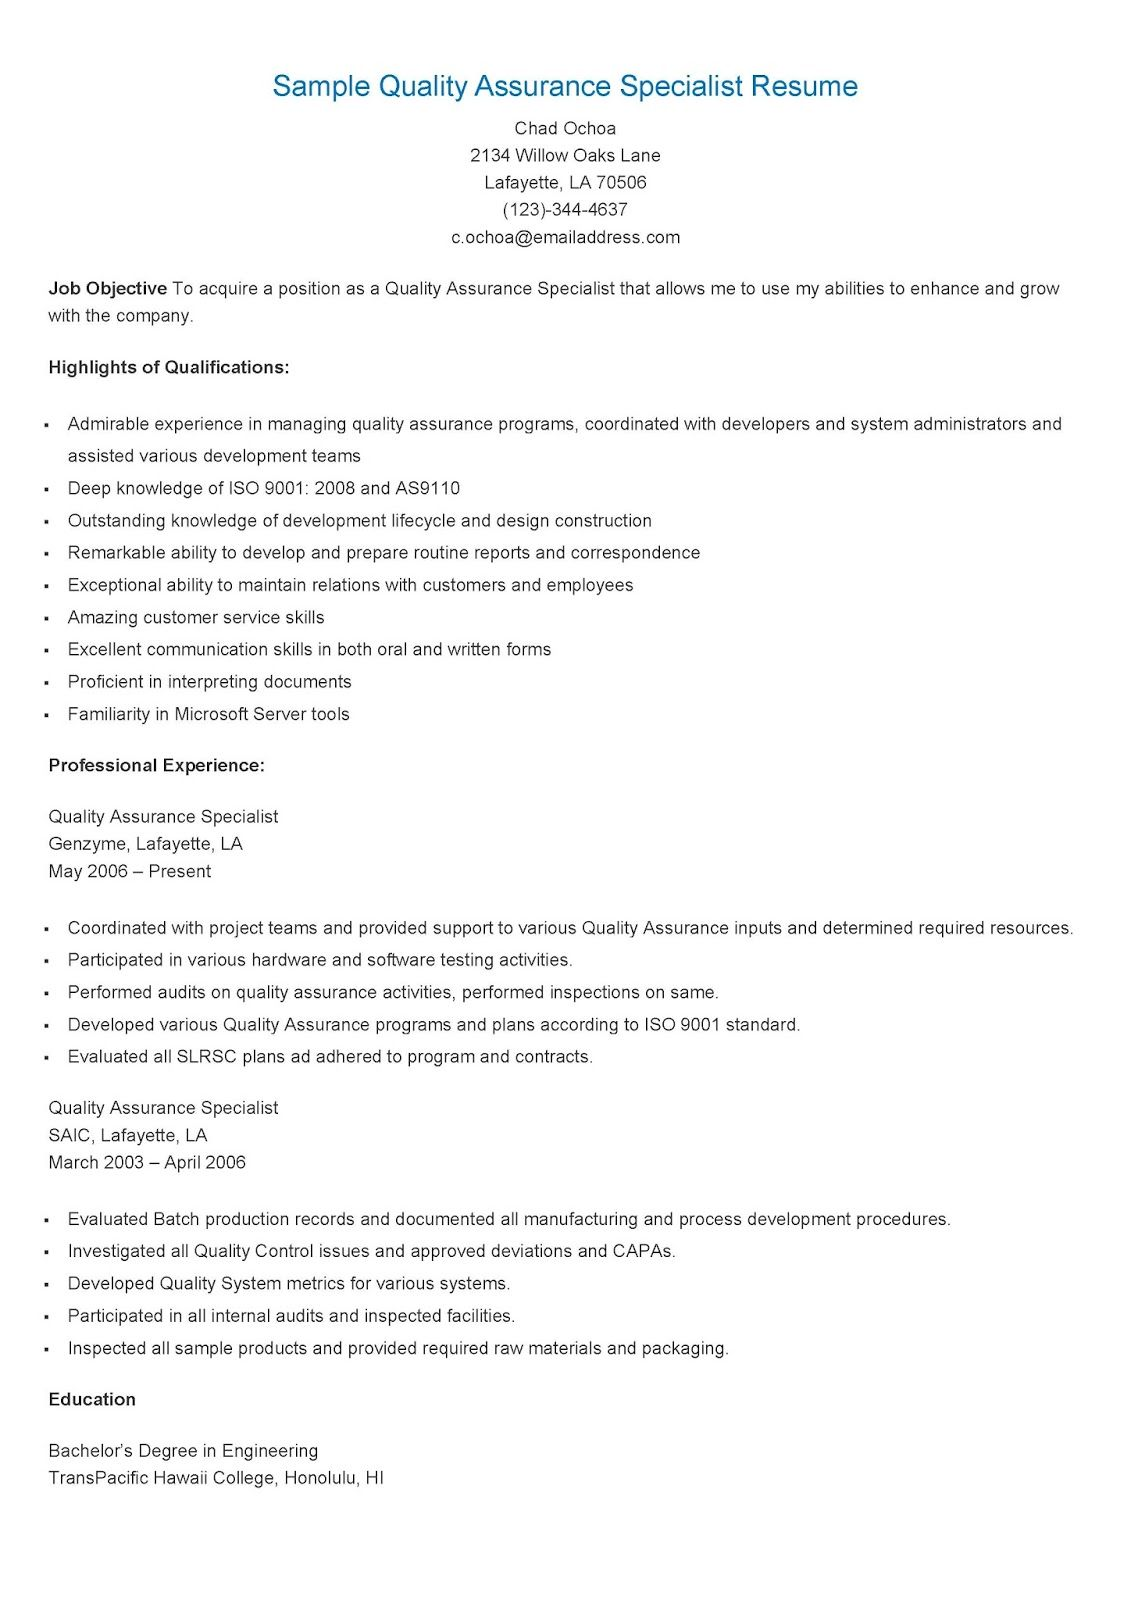 Sample Resume For Quality Assurance Executive Sample Quality Assurance Specialist Resume Resame